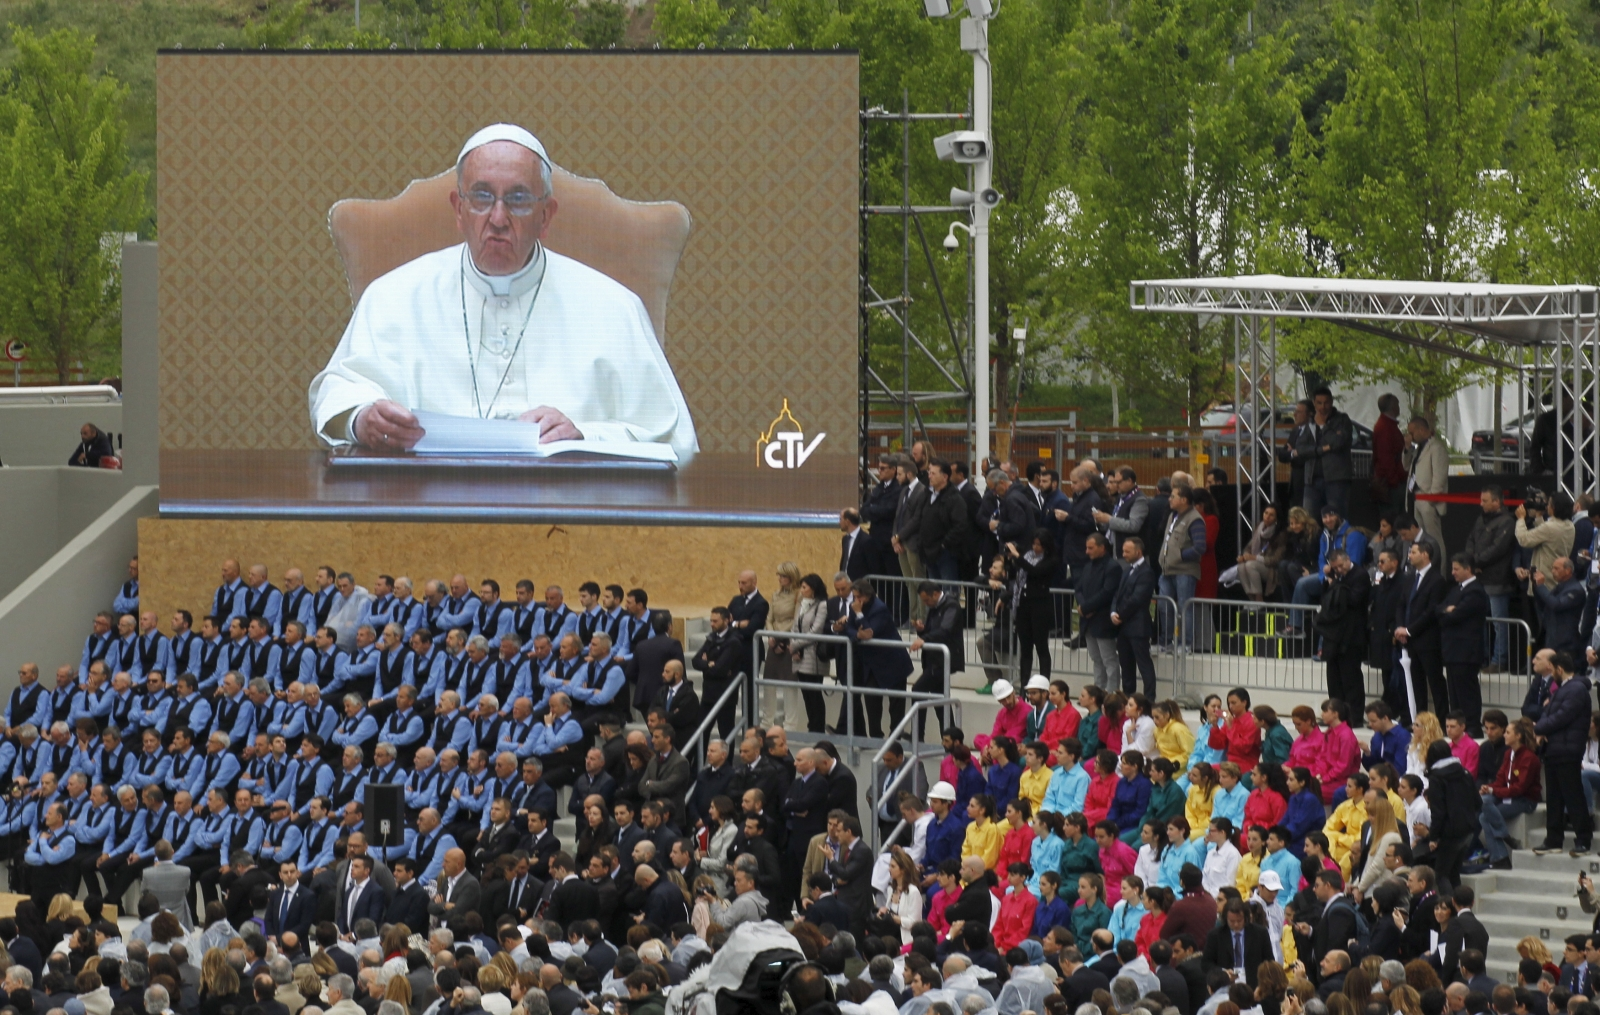 expo milano 2015 pope francis urges fancy food themed. Black Bedroom Furniture Sets. Home Design Ideas